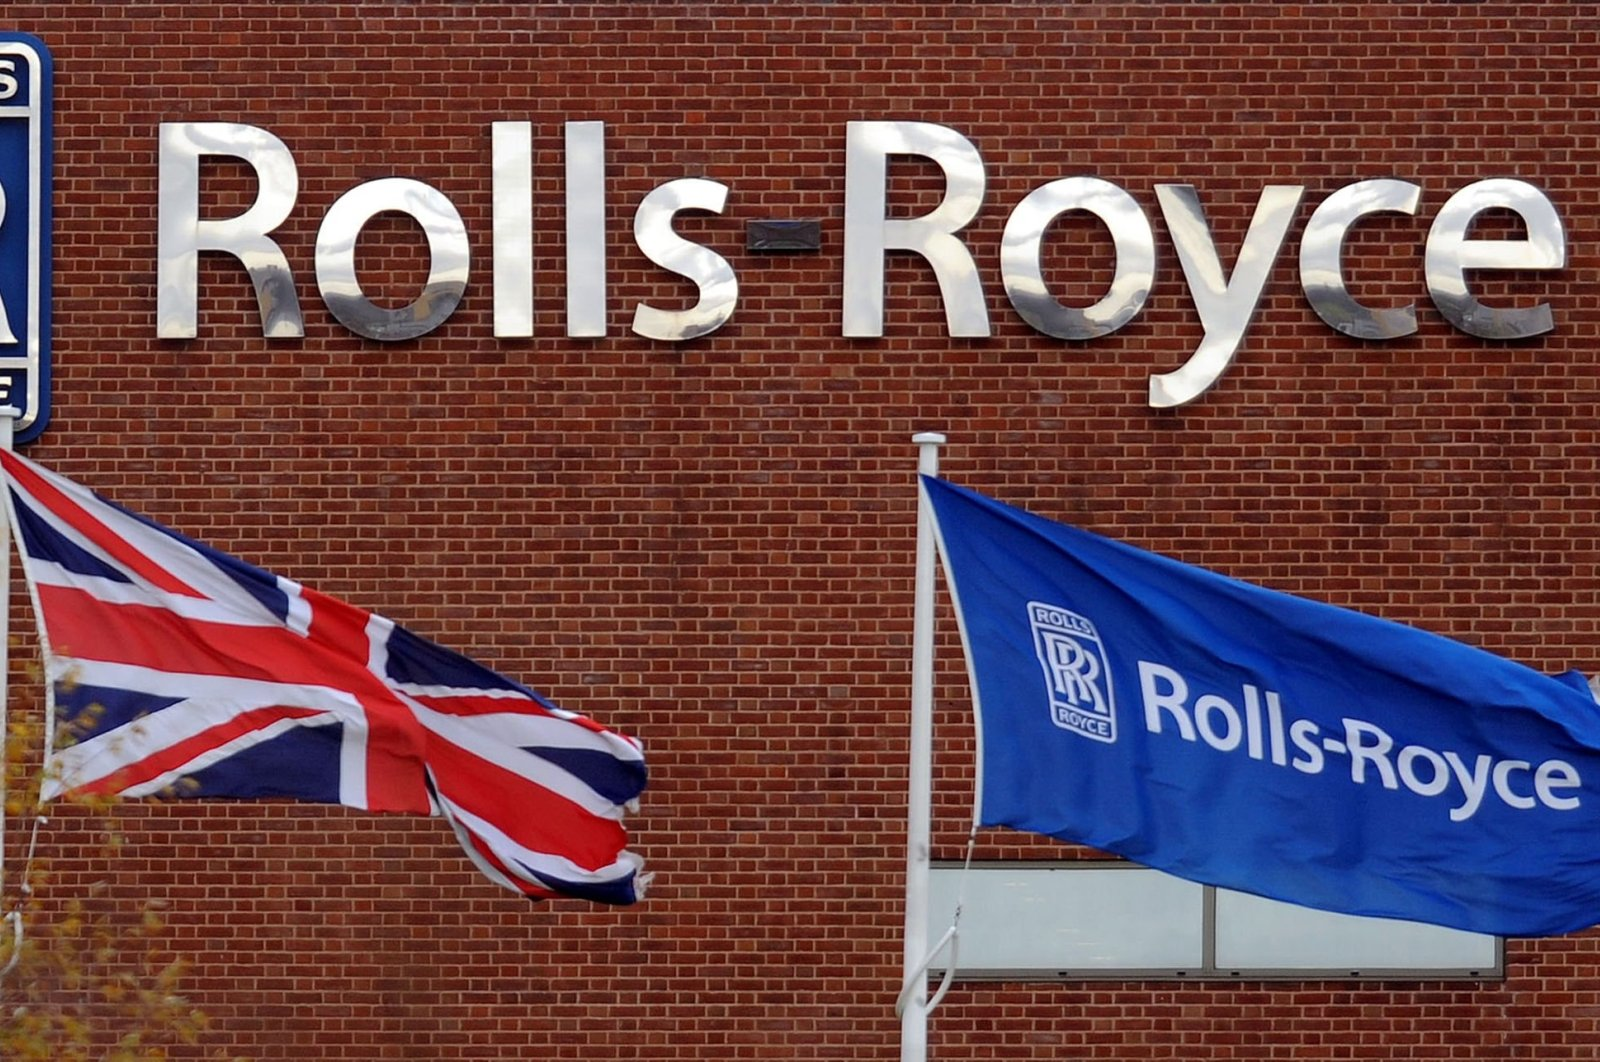 A general view of the Rolls-Royce factory in Allenton, Derby, central England, file photo, Nov. 20, 2008. (AFP Photo)